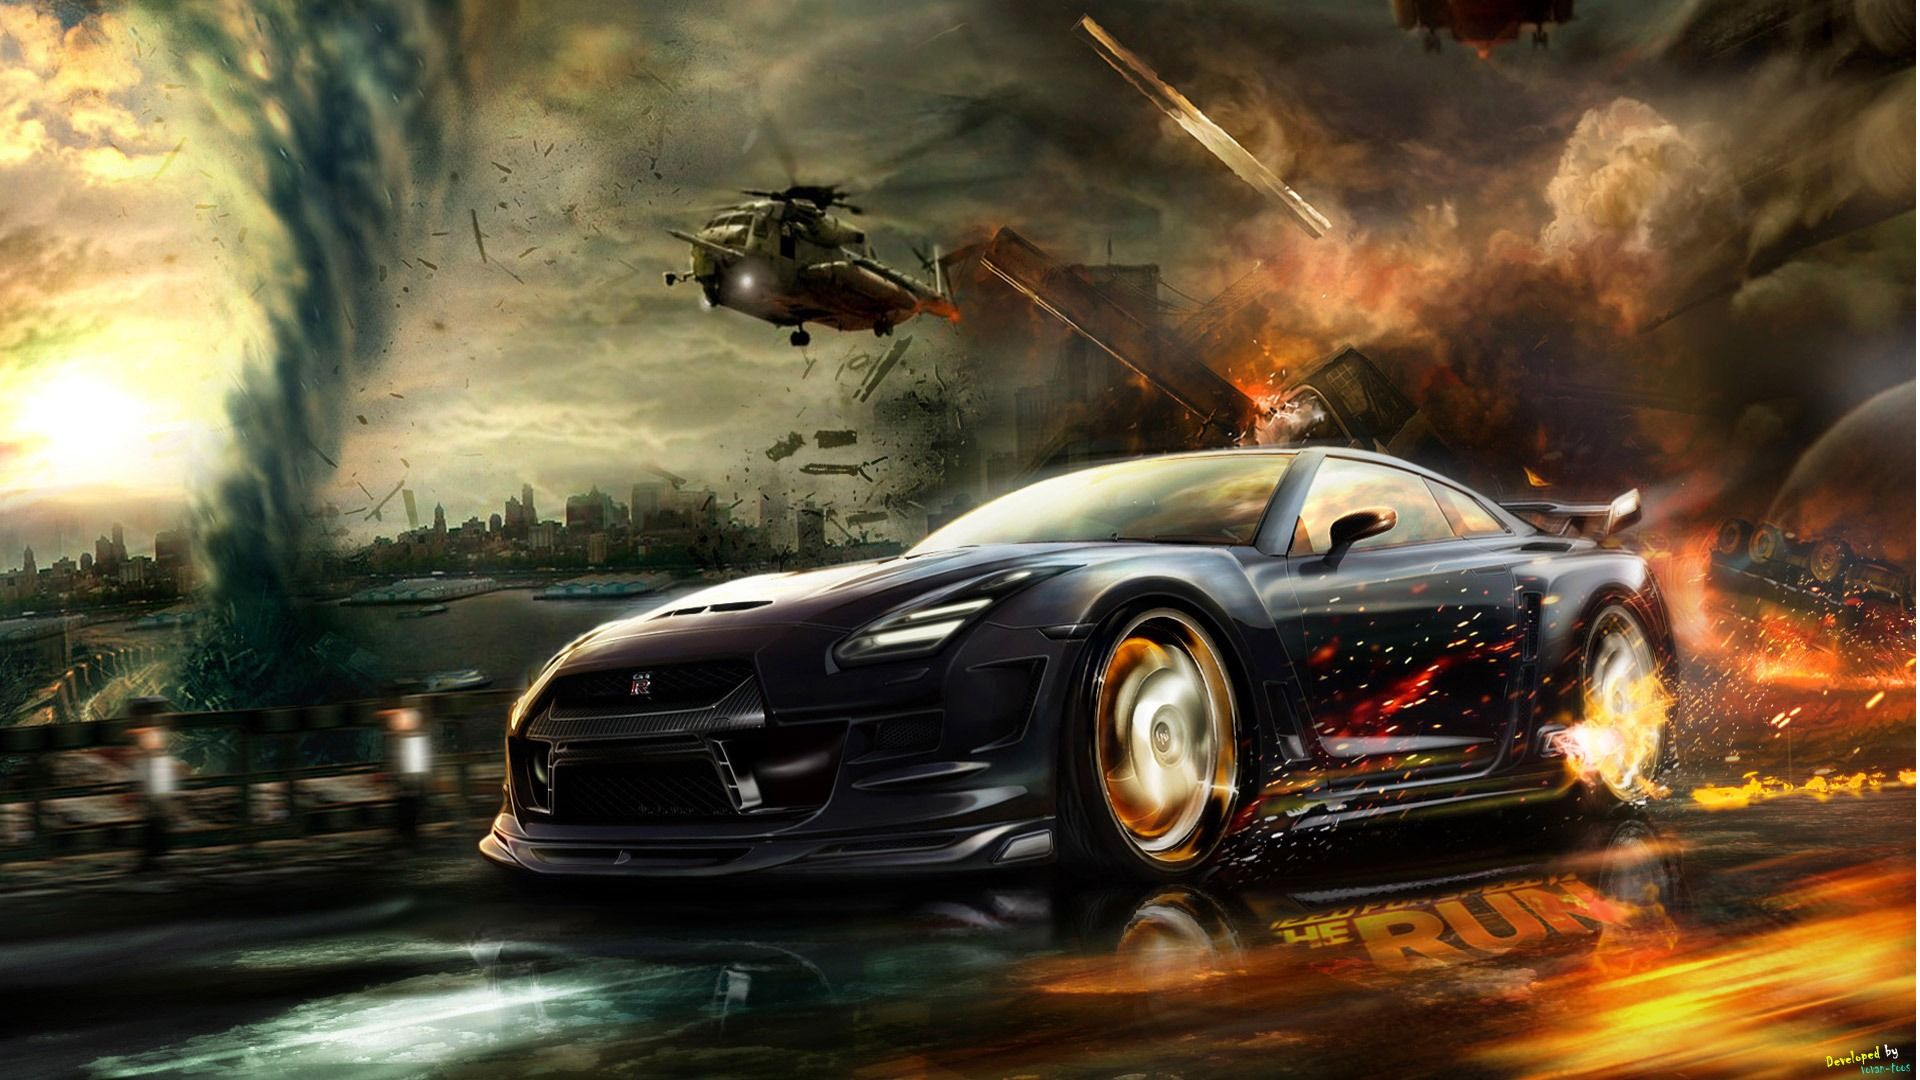 df9a52f58d36ed9999971399318497d9 Outstanding Bugatti Veyron Need for Speed Underground 2 Cars Trend